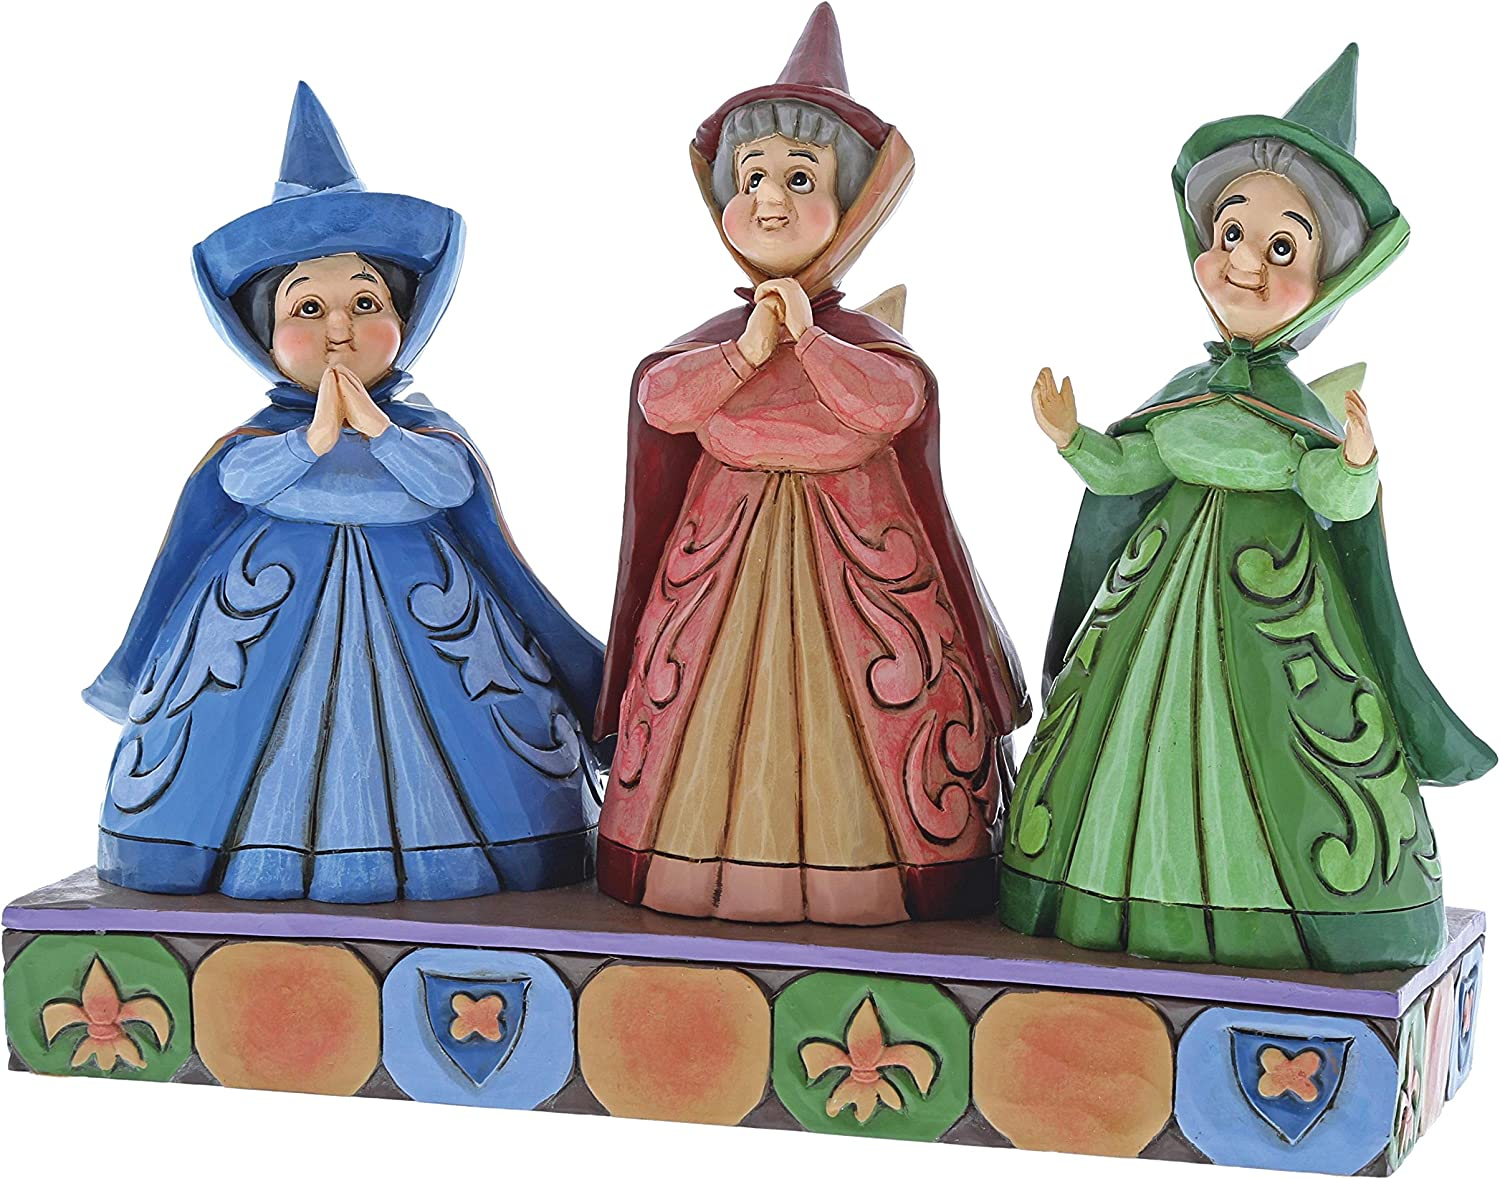 Enesco Disney Traditions by Jim Shore Three Fairies Stone Resin Figurine, Multicolor